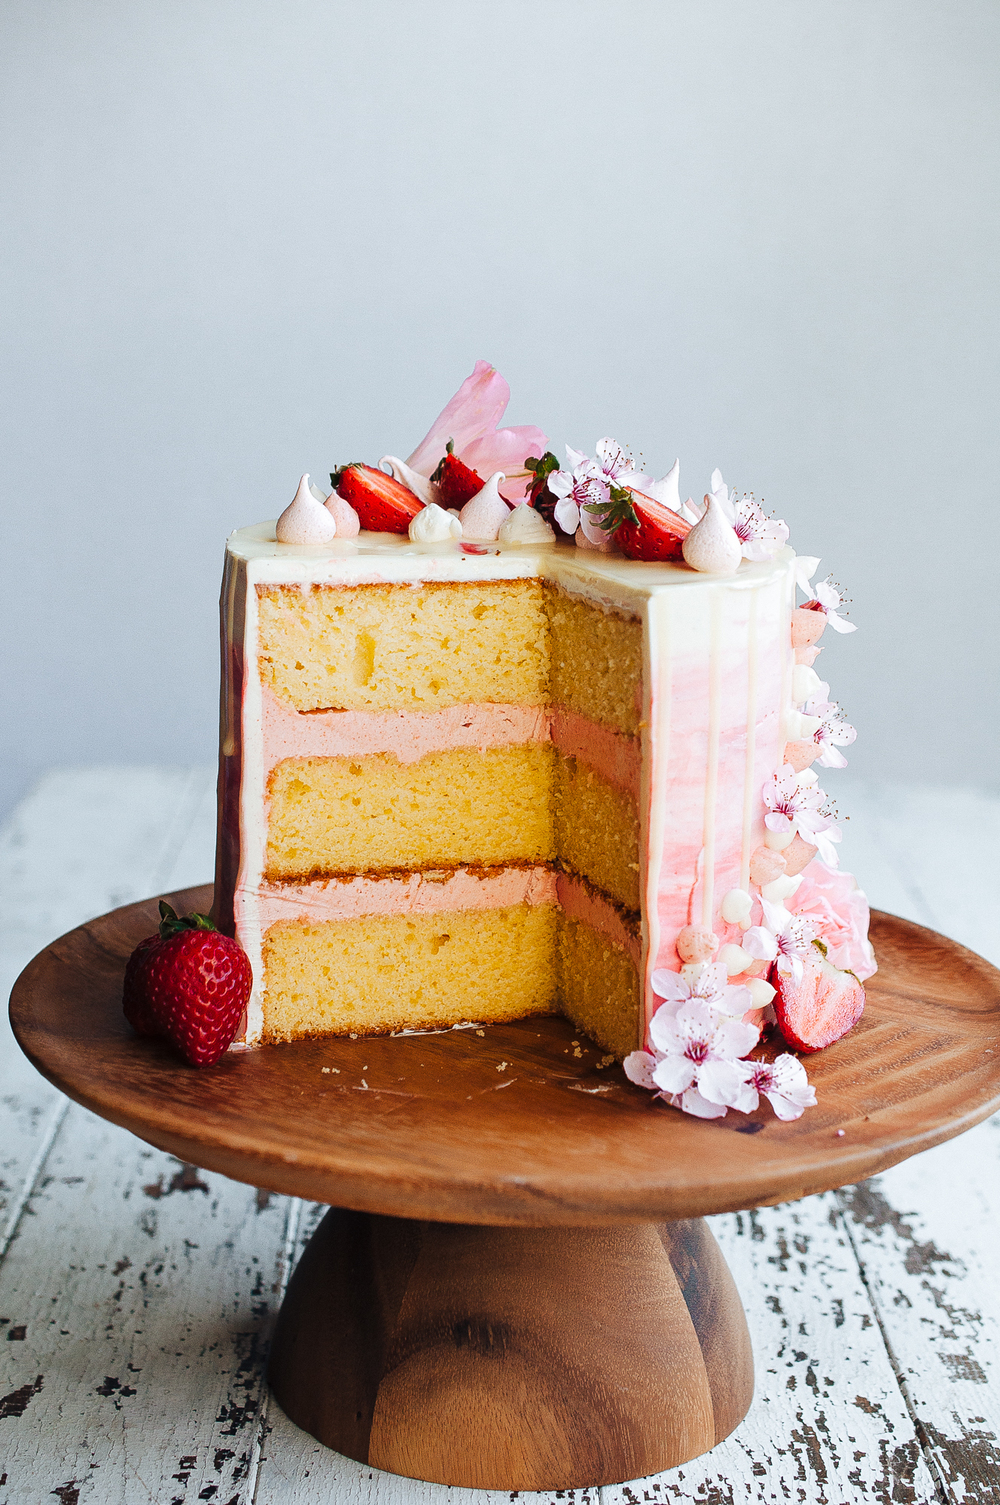 Strawberry and vanilla cake 22.jpg